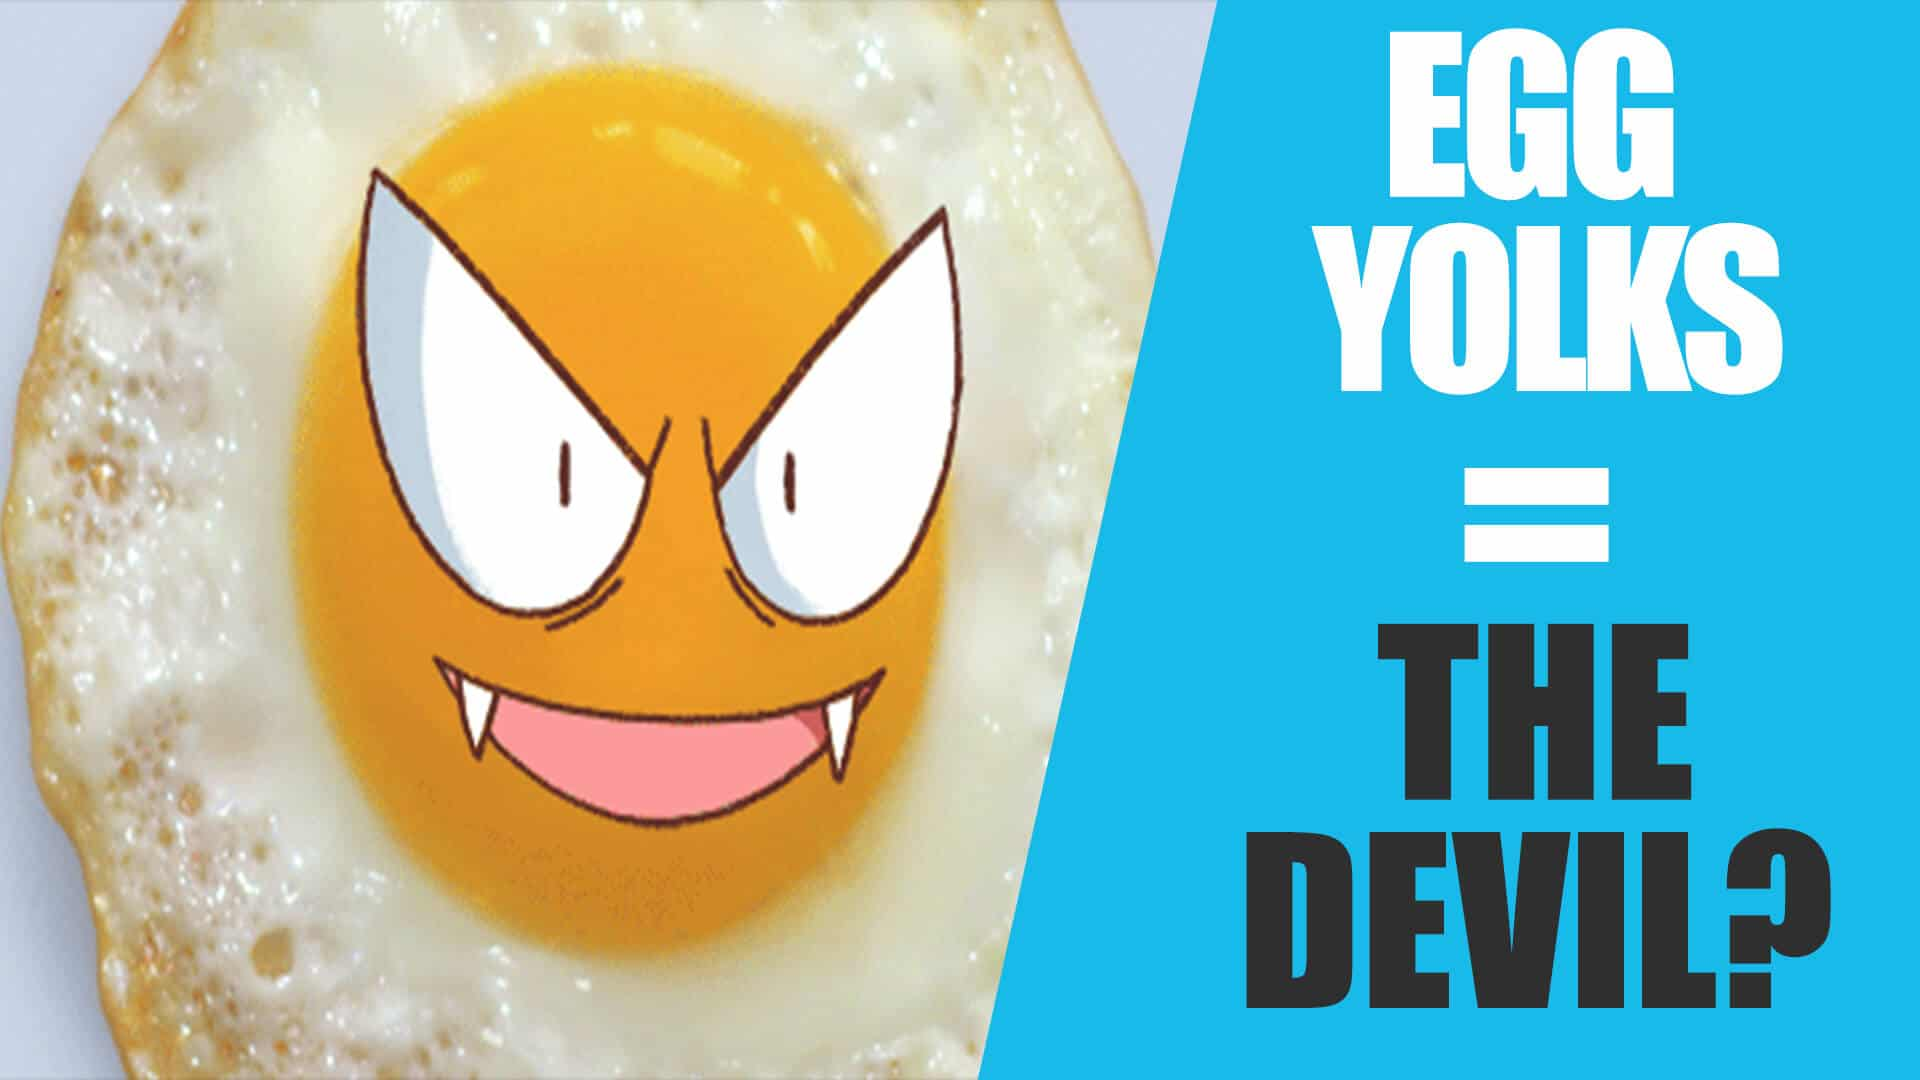 Egg Yolks = Unhealthy? Cholesterol? Heart Disease? | The Egg Yolk Debate